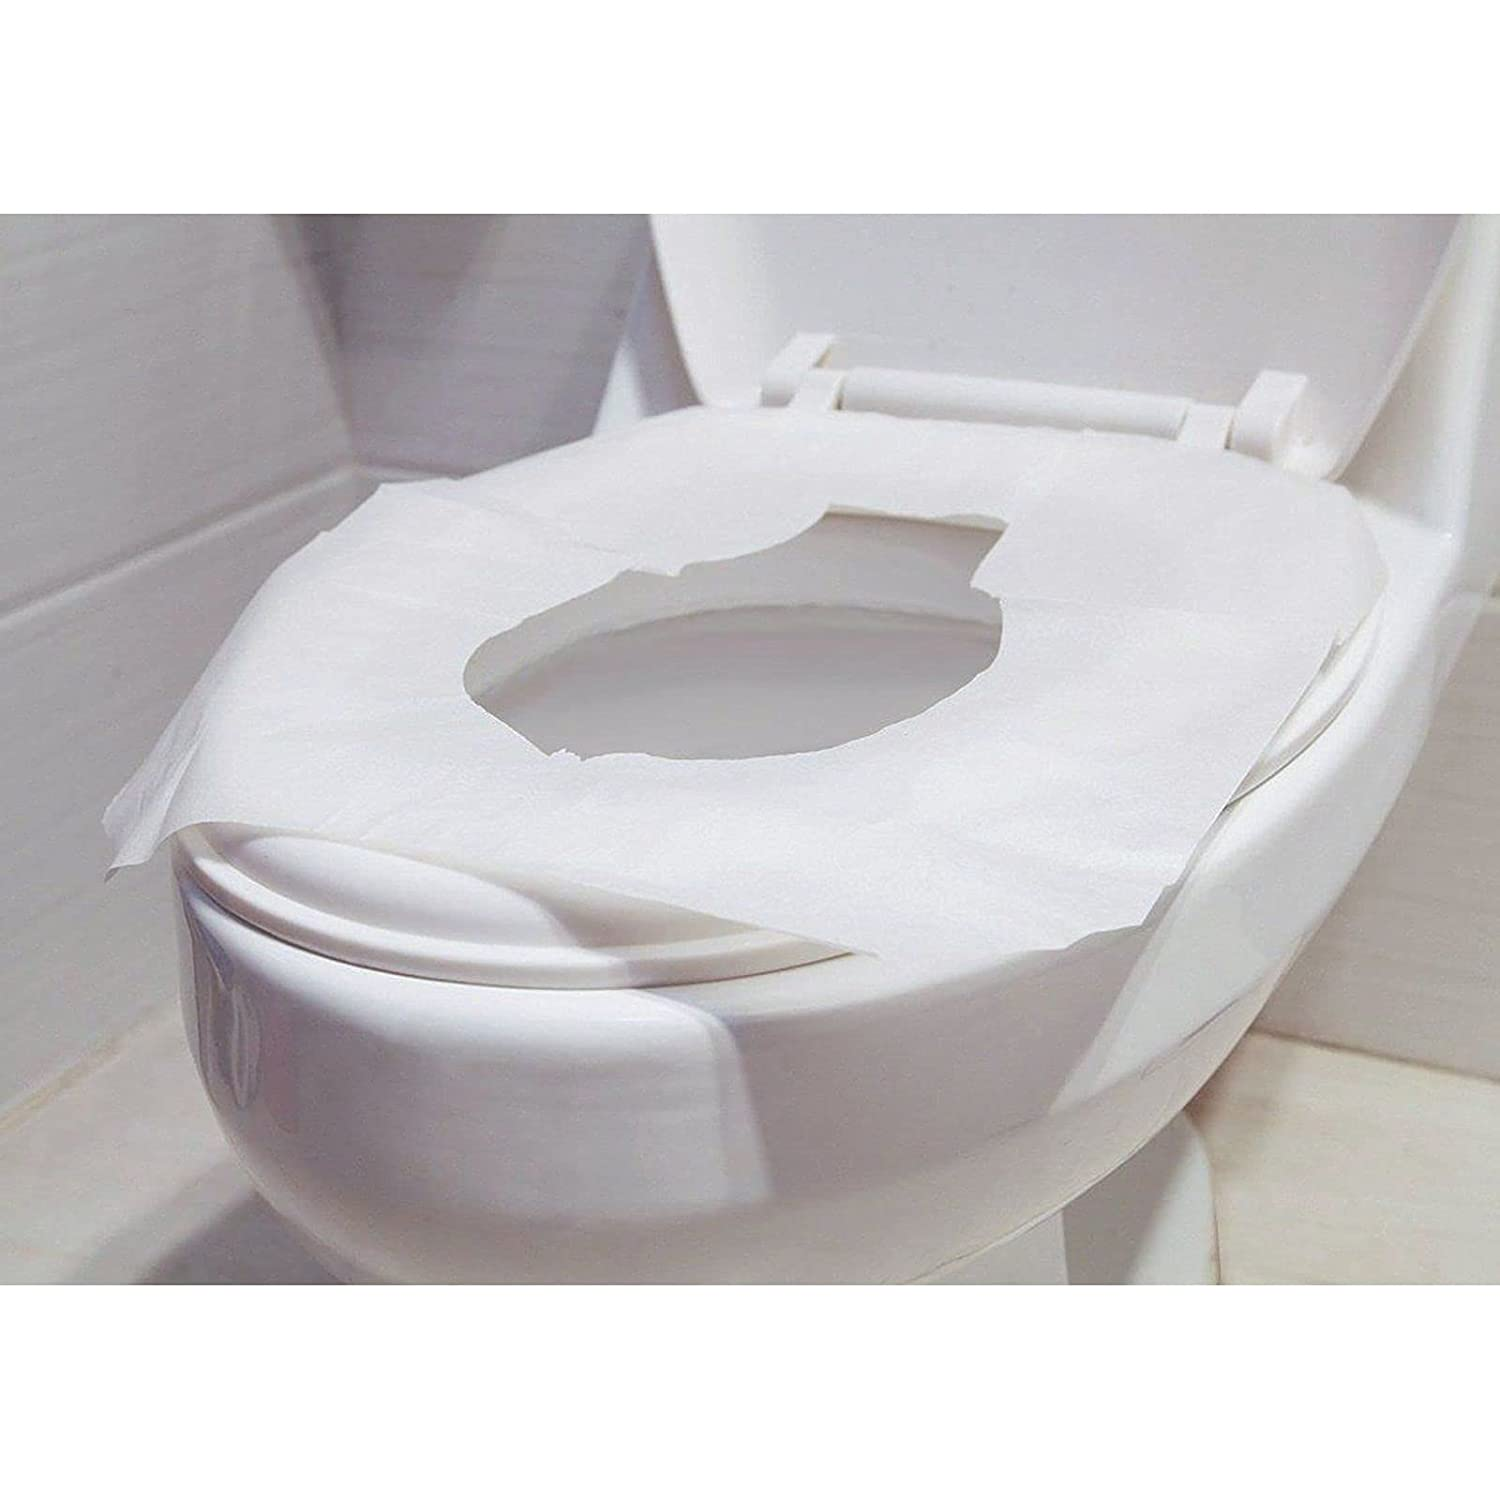 Paper Soldering Toilet Seat Animer and price revision Covers - Perfect for -Disposable Size Travel